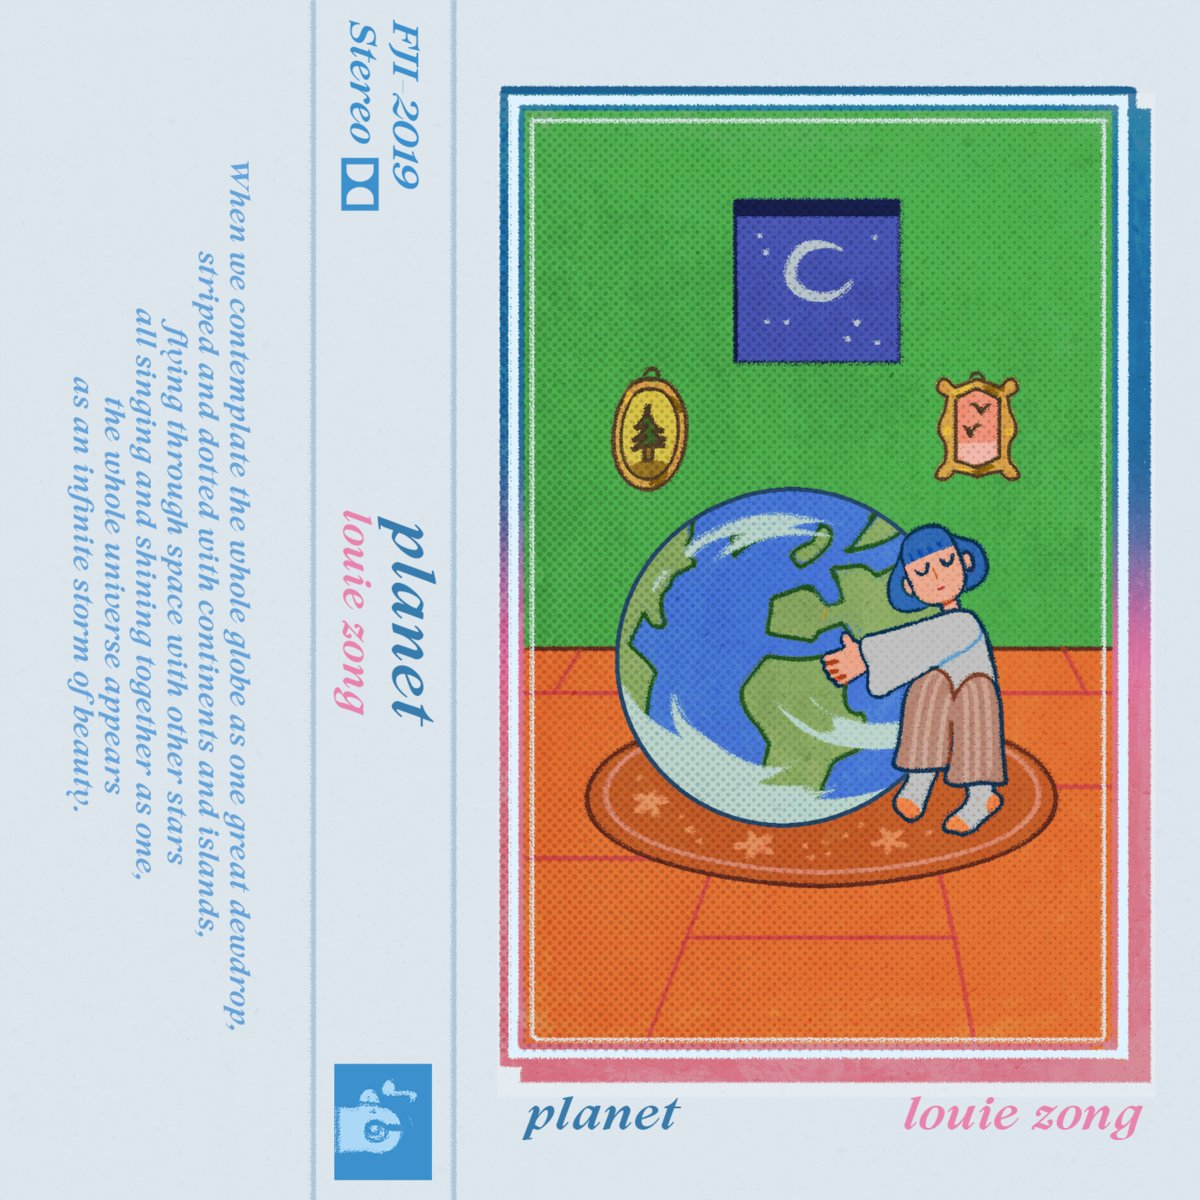 hello here is a new album, planet mother earth meditation music 🌎🎵 louiezong.bandcamp.com/album/planet